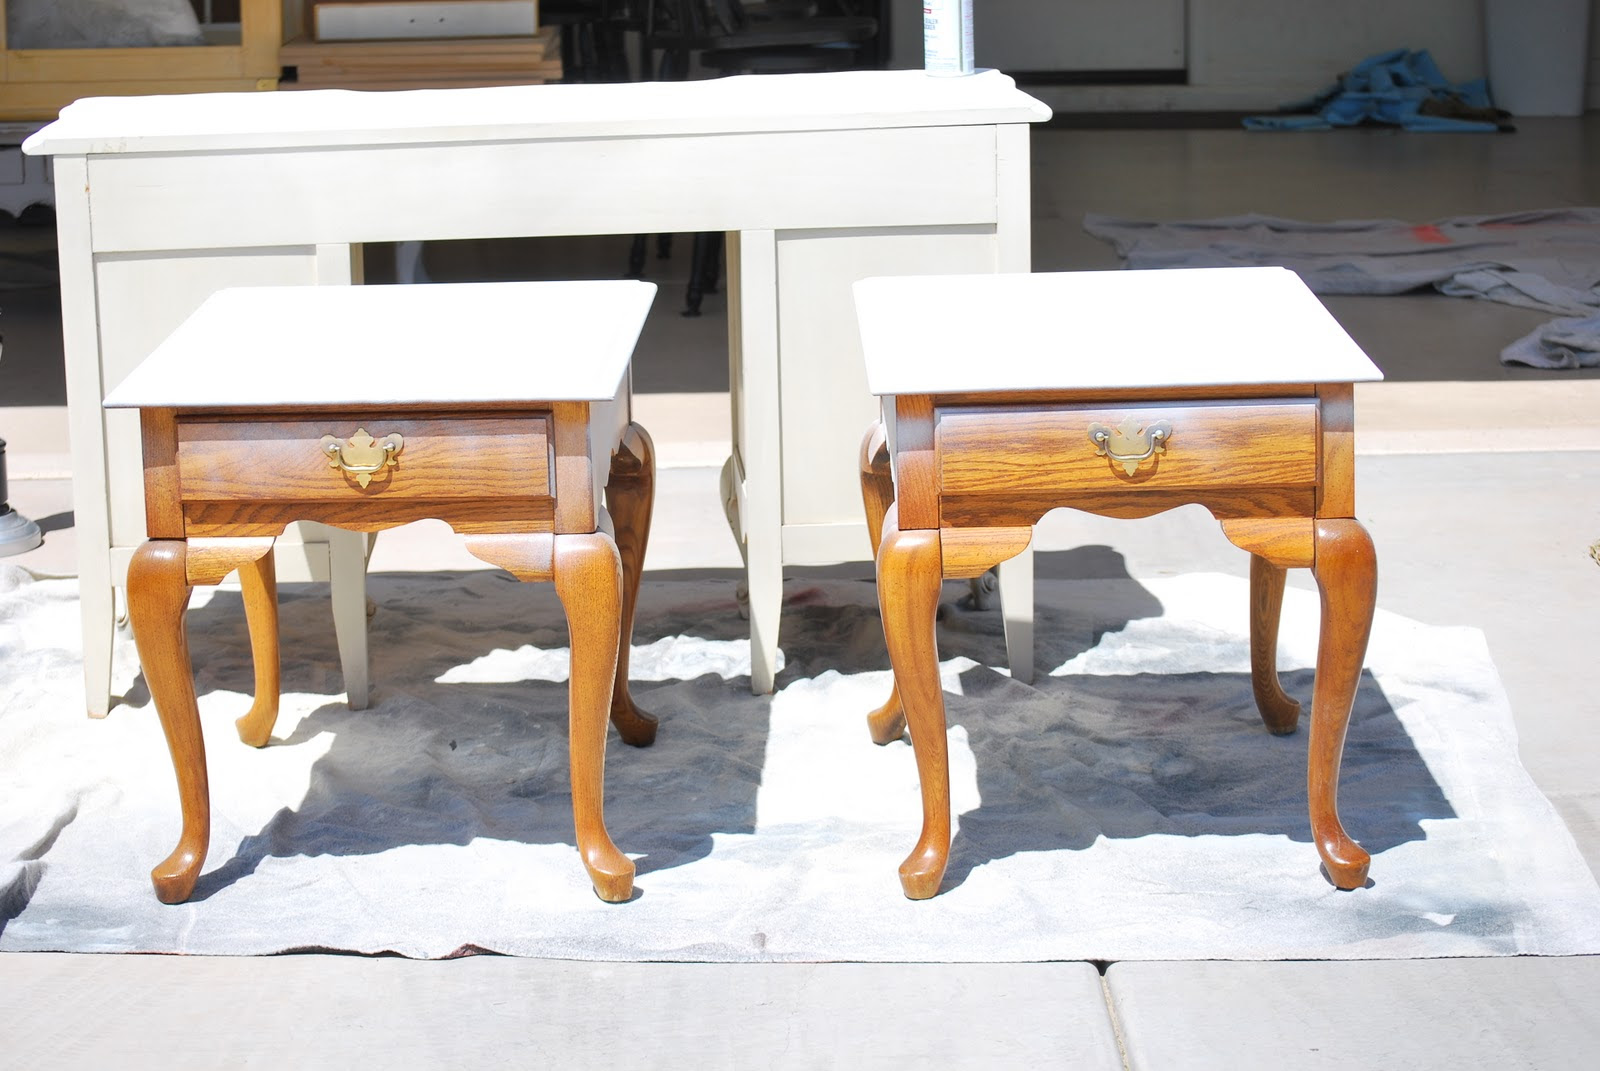 Going Rustic: A Guide to Painting Old Wooden Furniture